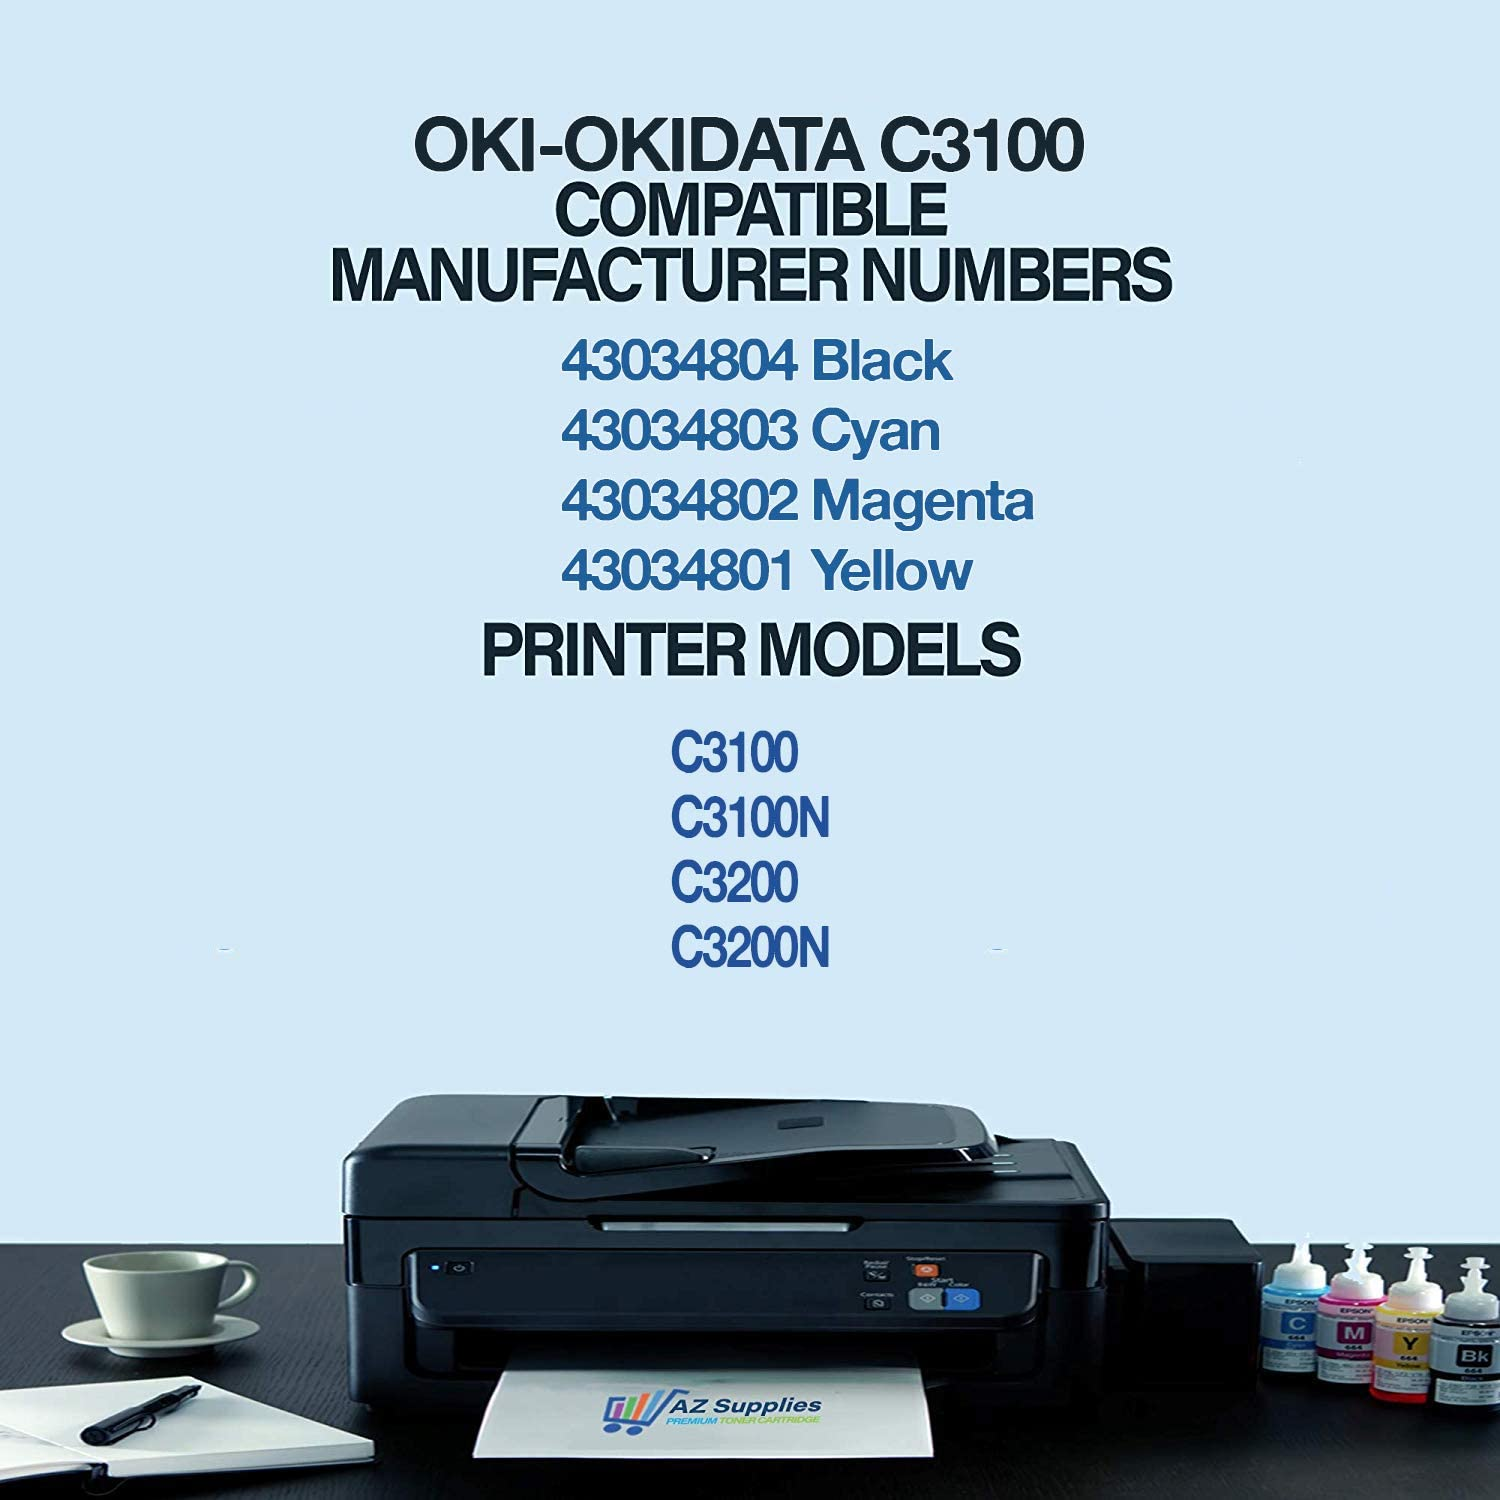 Print.After.Print Compatible Toner Replacement for Oki-Okidata 43034804 Black C3200 C3100N Works with: C3100 C3200N